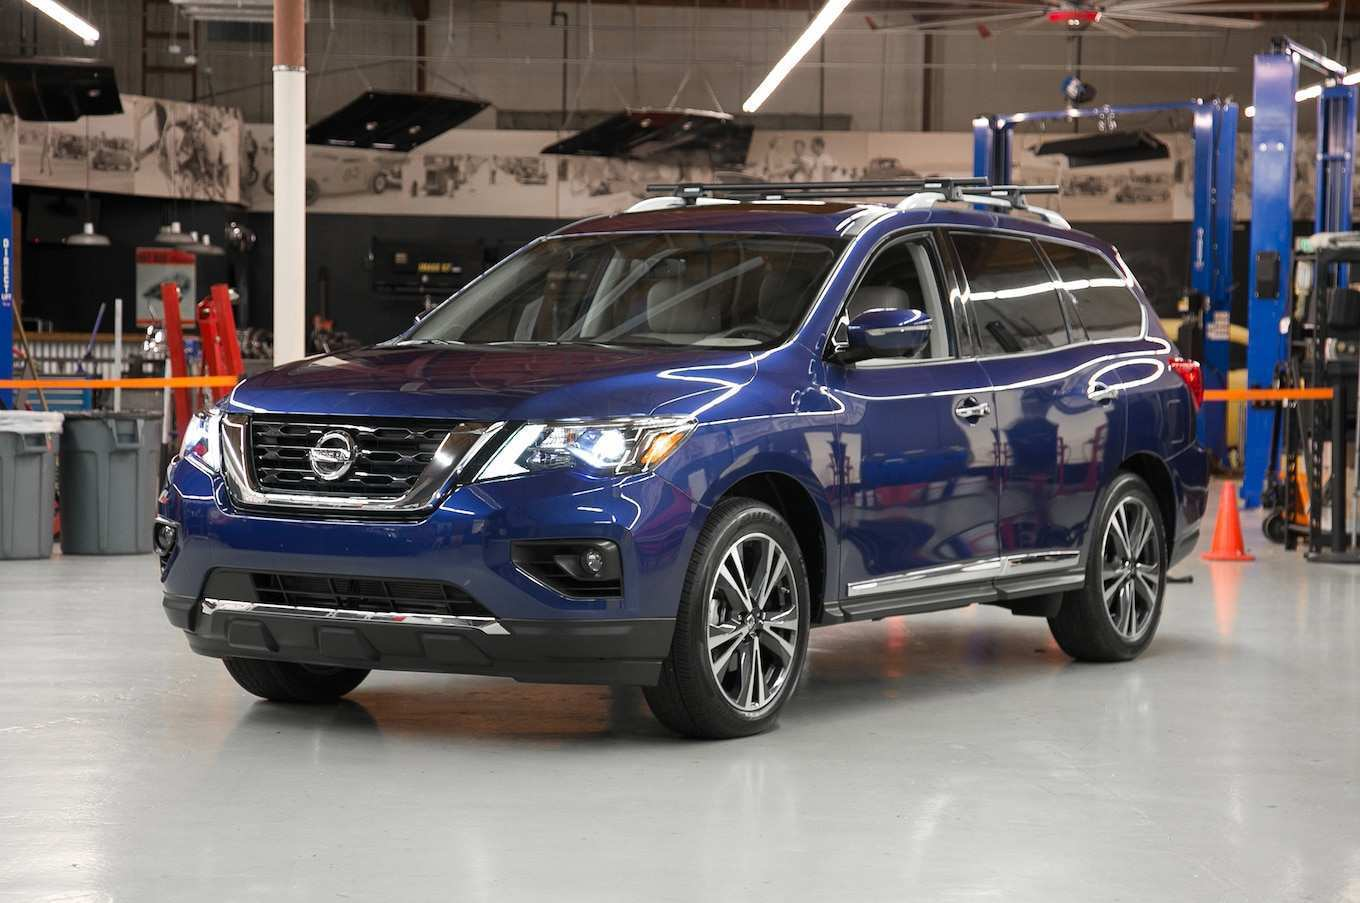 42 All New 2020 Nissan Pathfinder Hybrid New Review for 2020 Nissan Pathfinder Hybrid